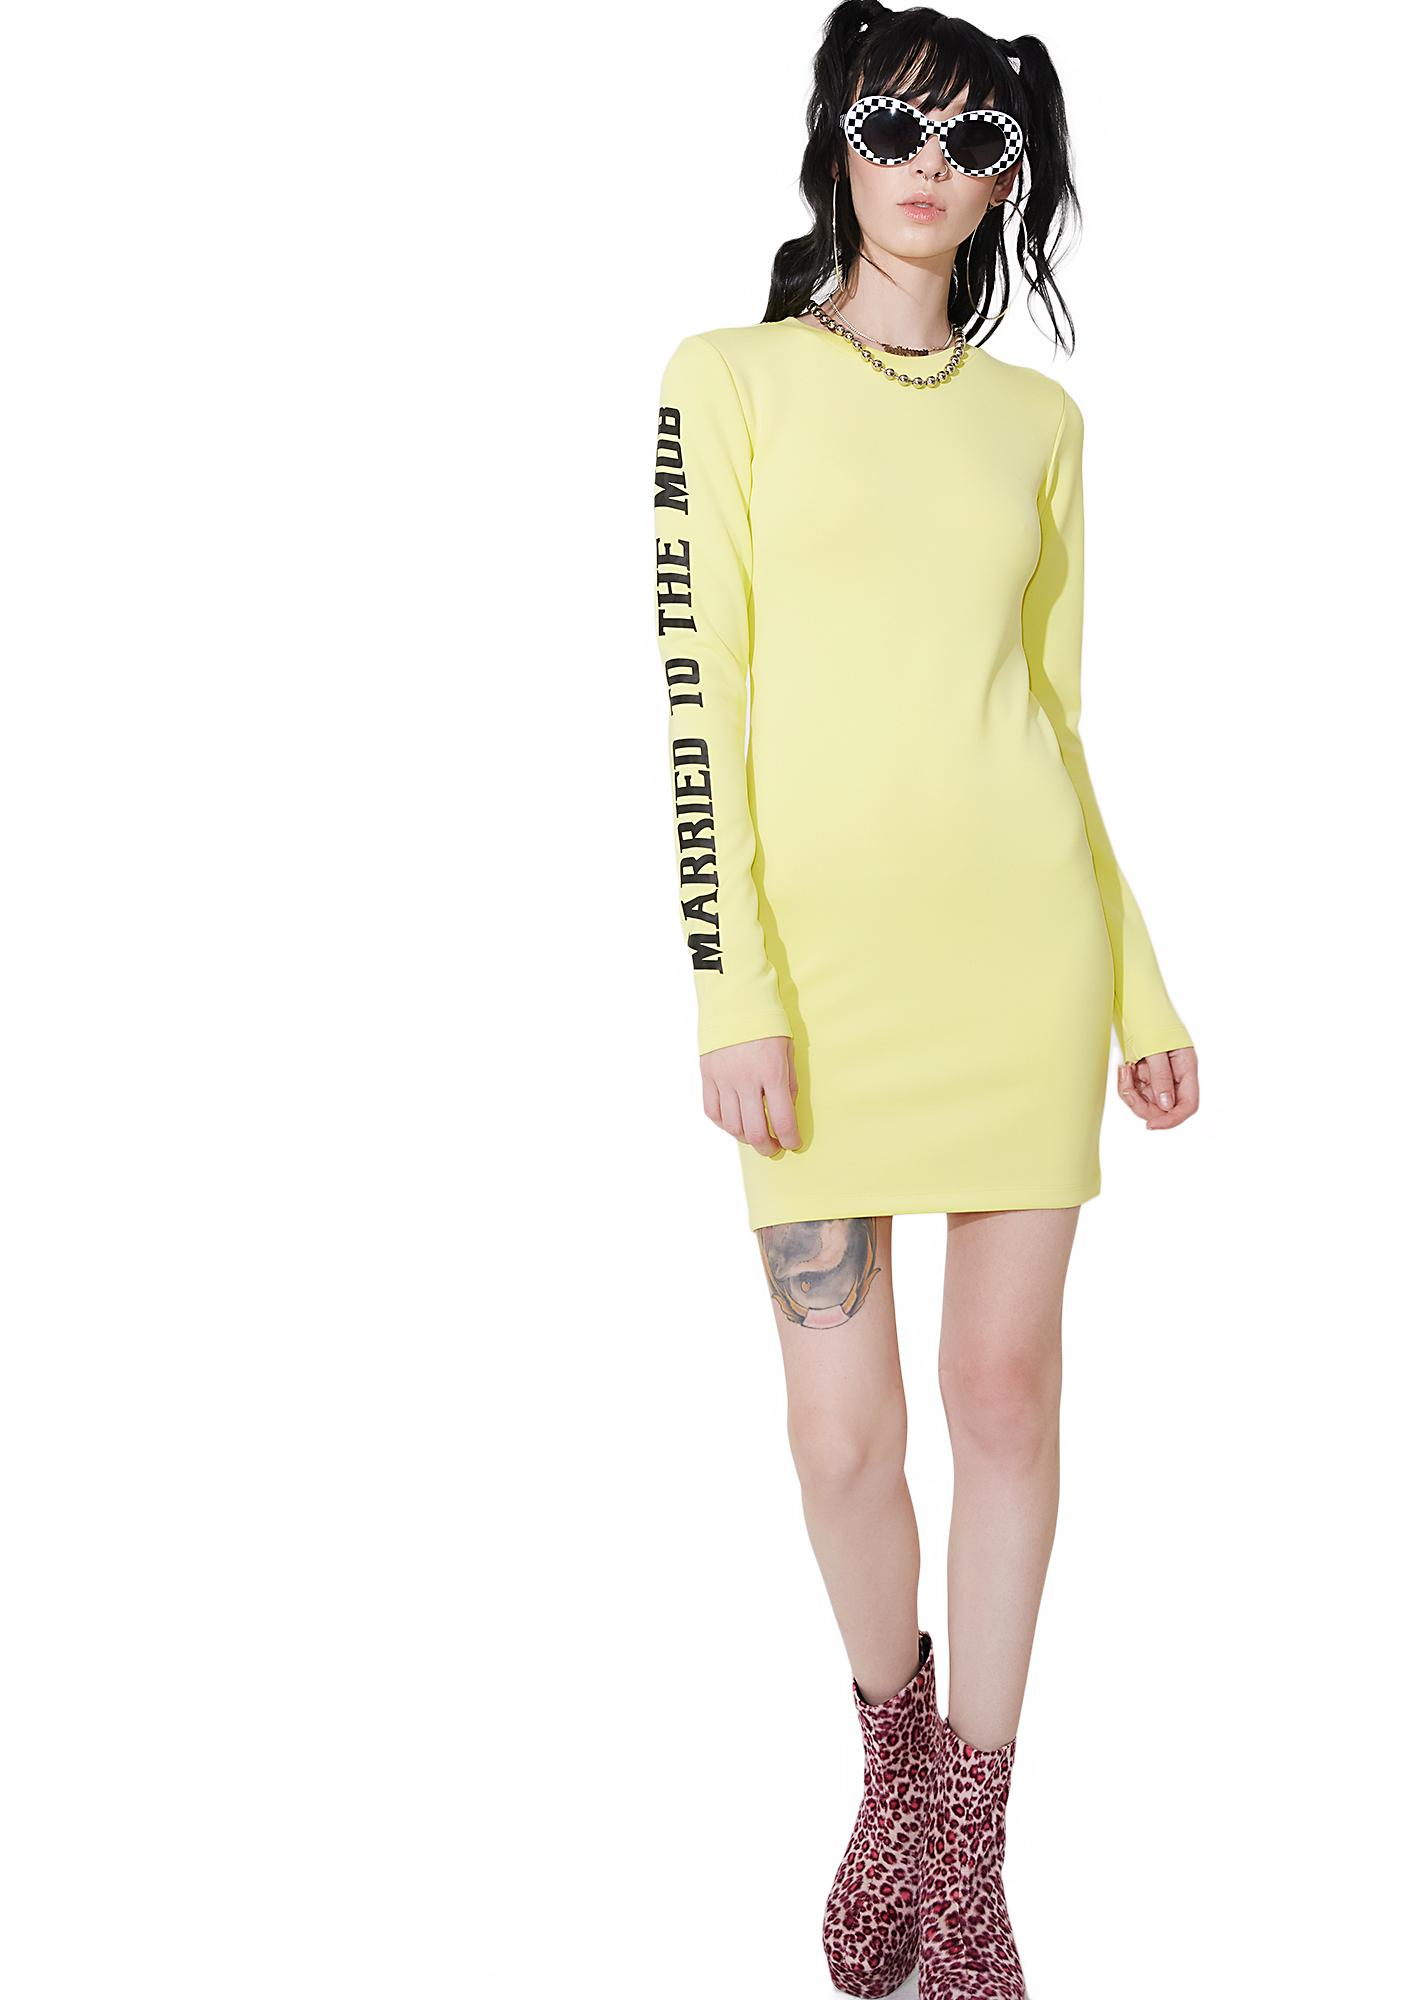 Married to the Mob MTTM Bodycon Dress